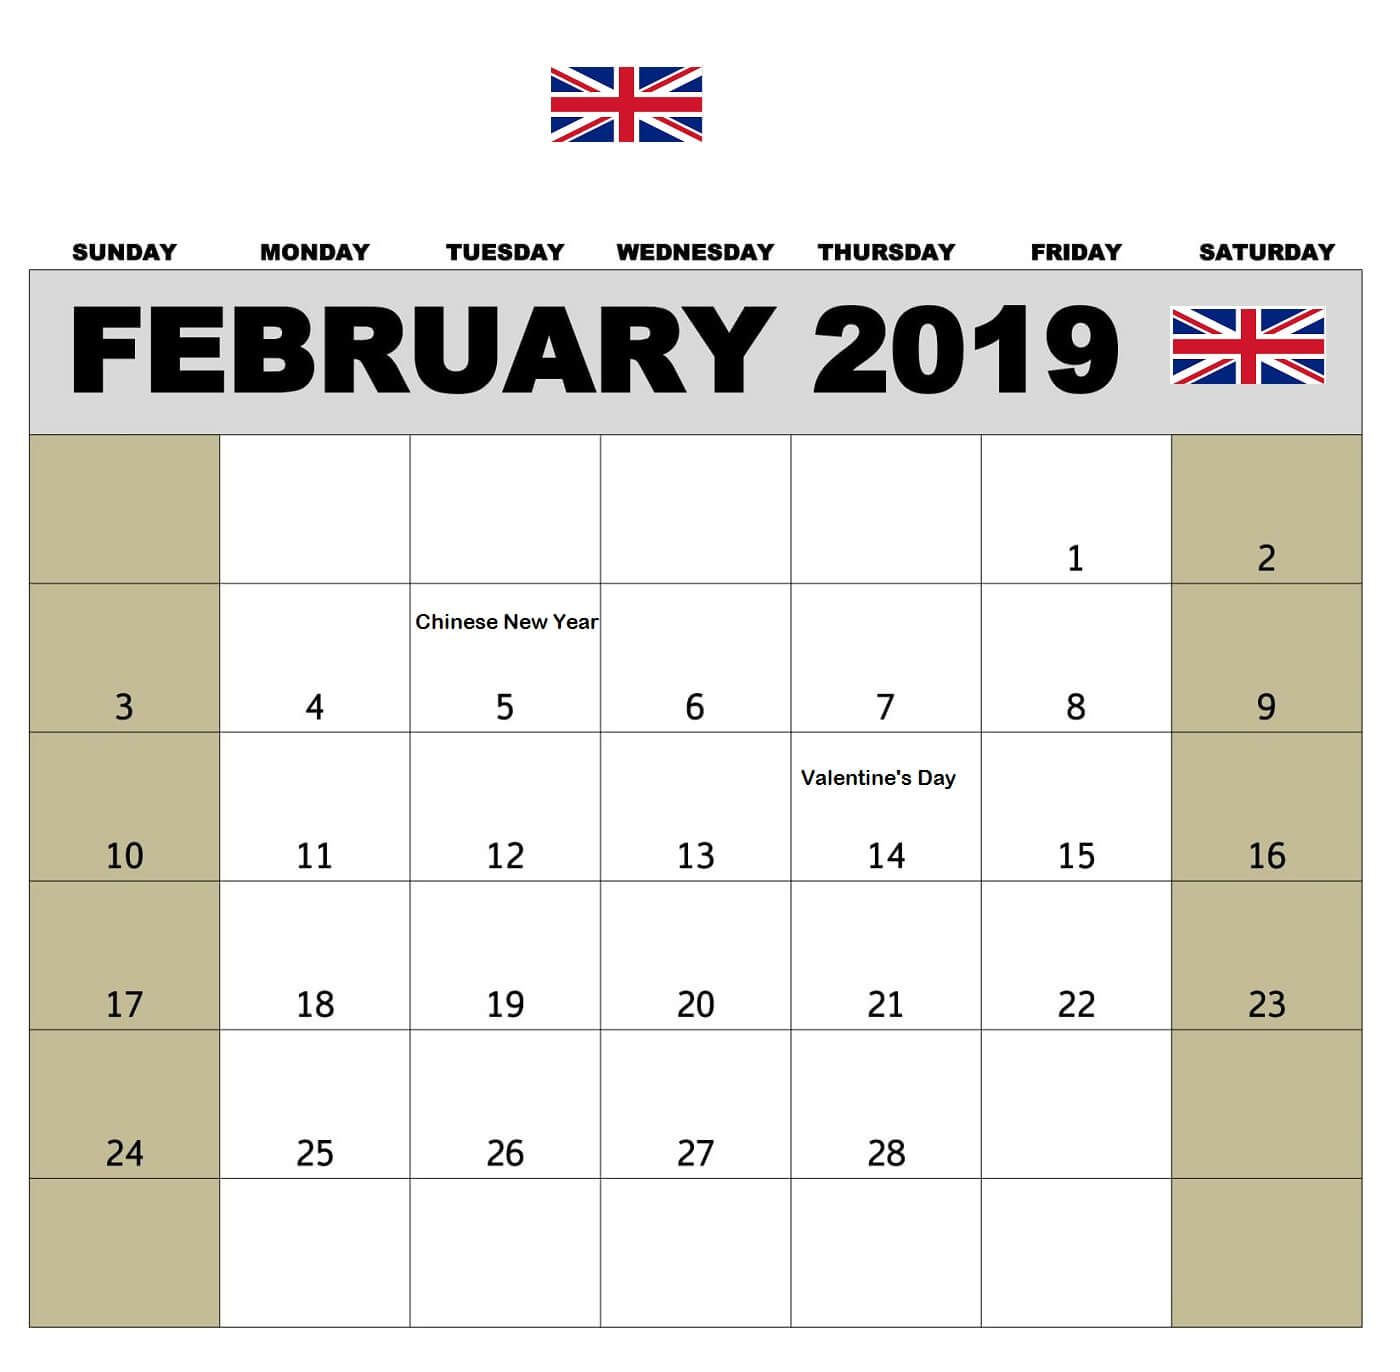 Chinese Calendar February 2019 February 2019 Calendar With UK Holidays | 125+ February 2019